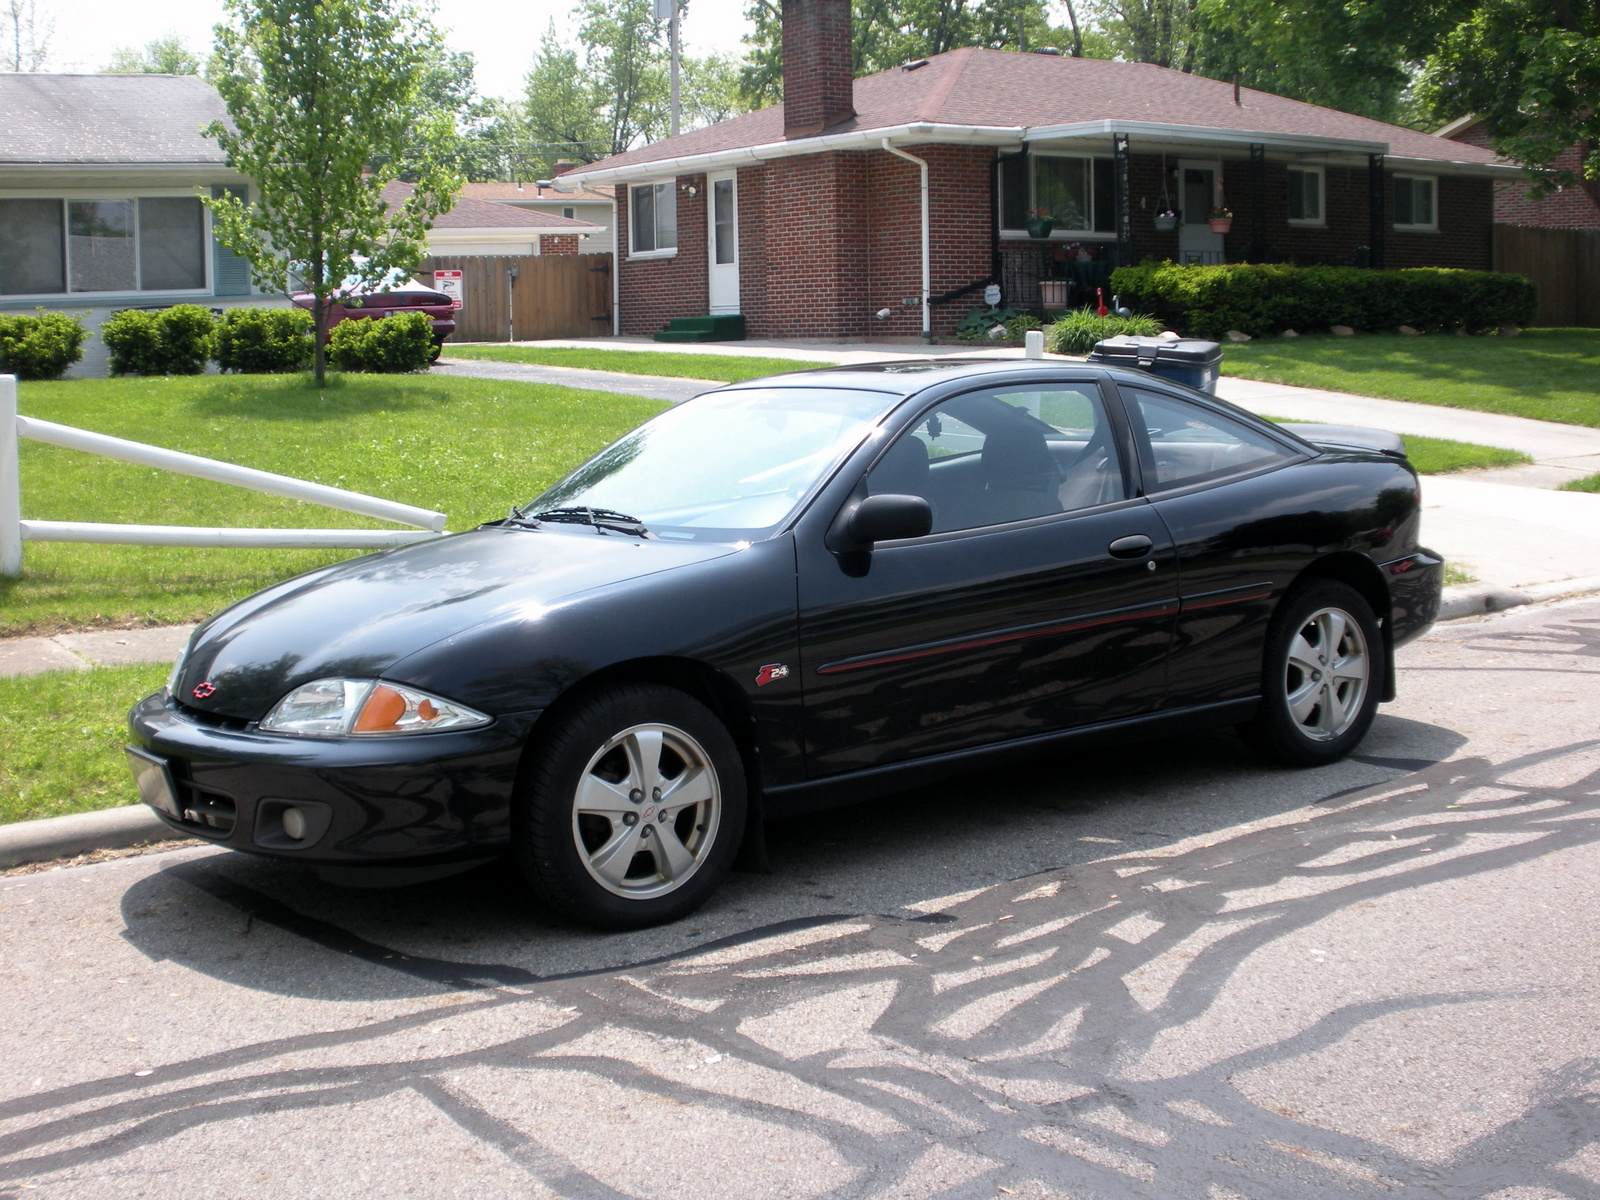 Chevrolet cavalier coupe